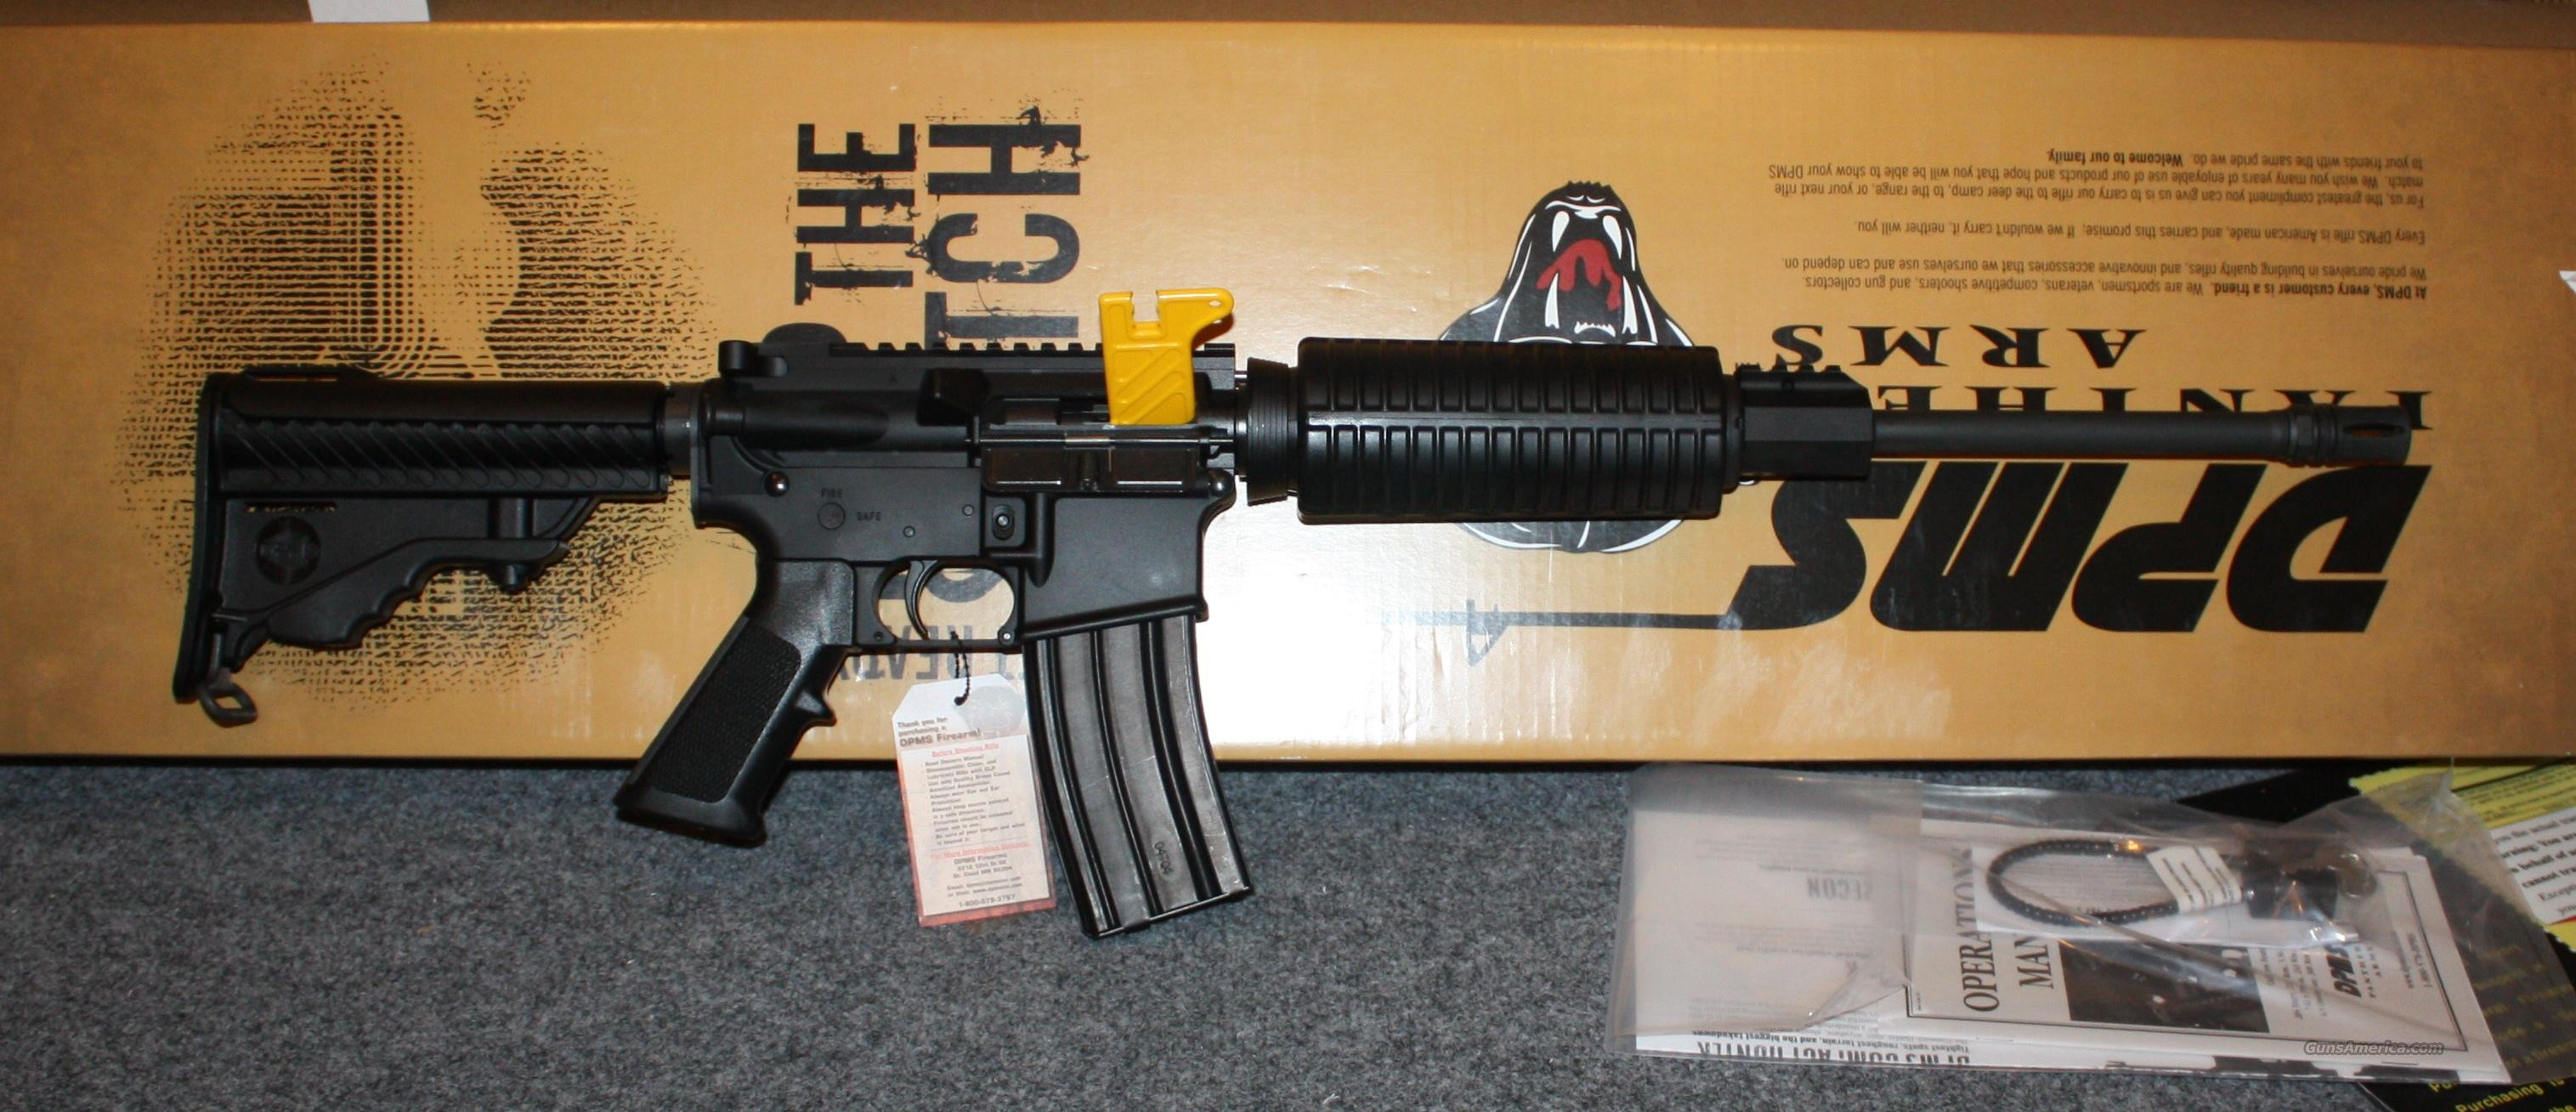 "DPMS Panther Oracle AR15 Rifle 5.56 Nato / 223 Remington 16"" Barrel, 6 Position Stock, Black  Guns > Rifles > DPMS - Panther Arms > Complete Rifle"